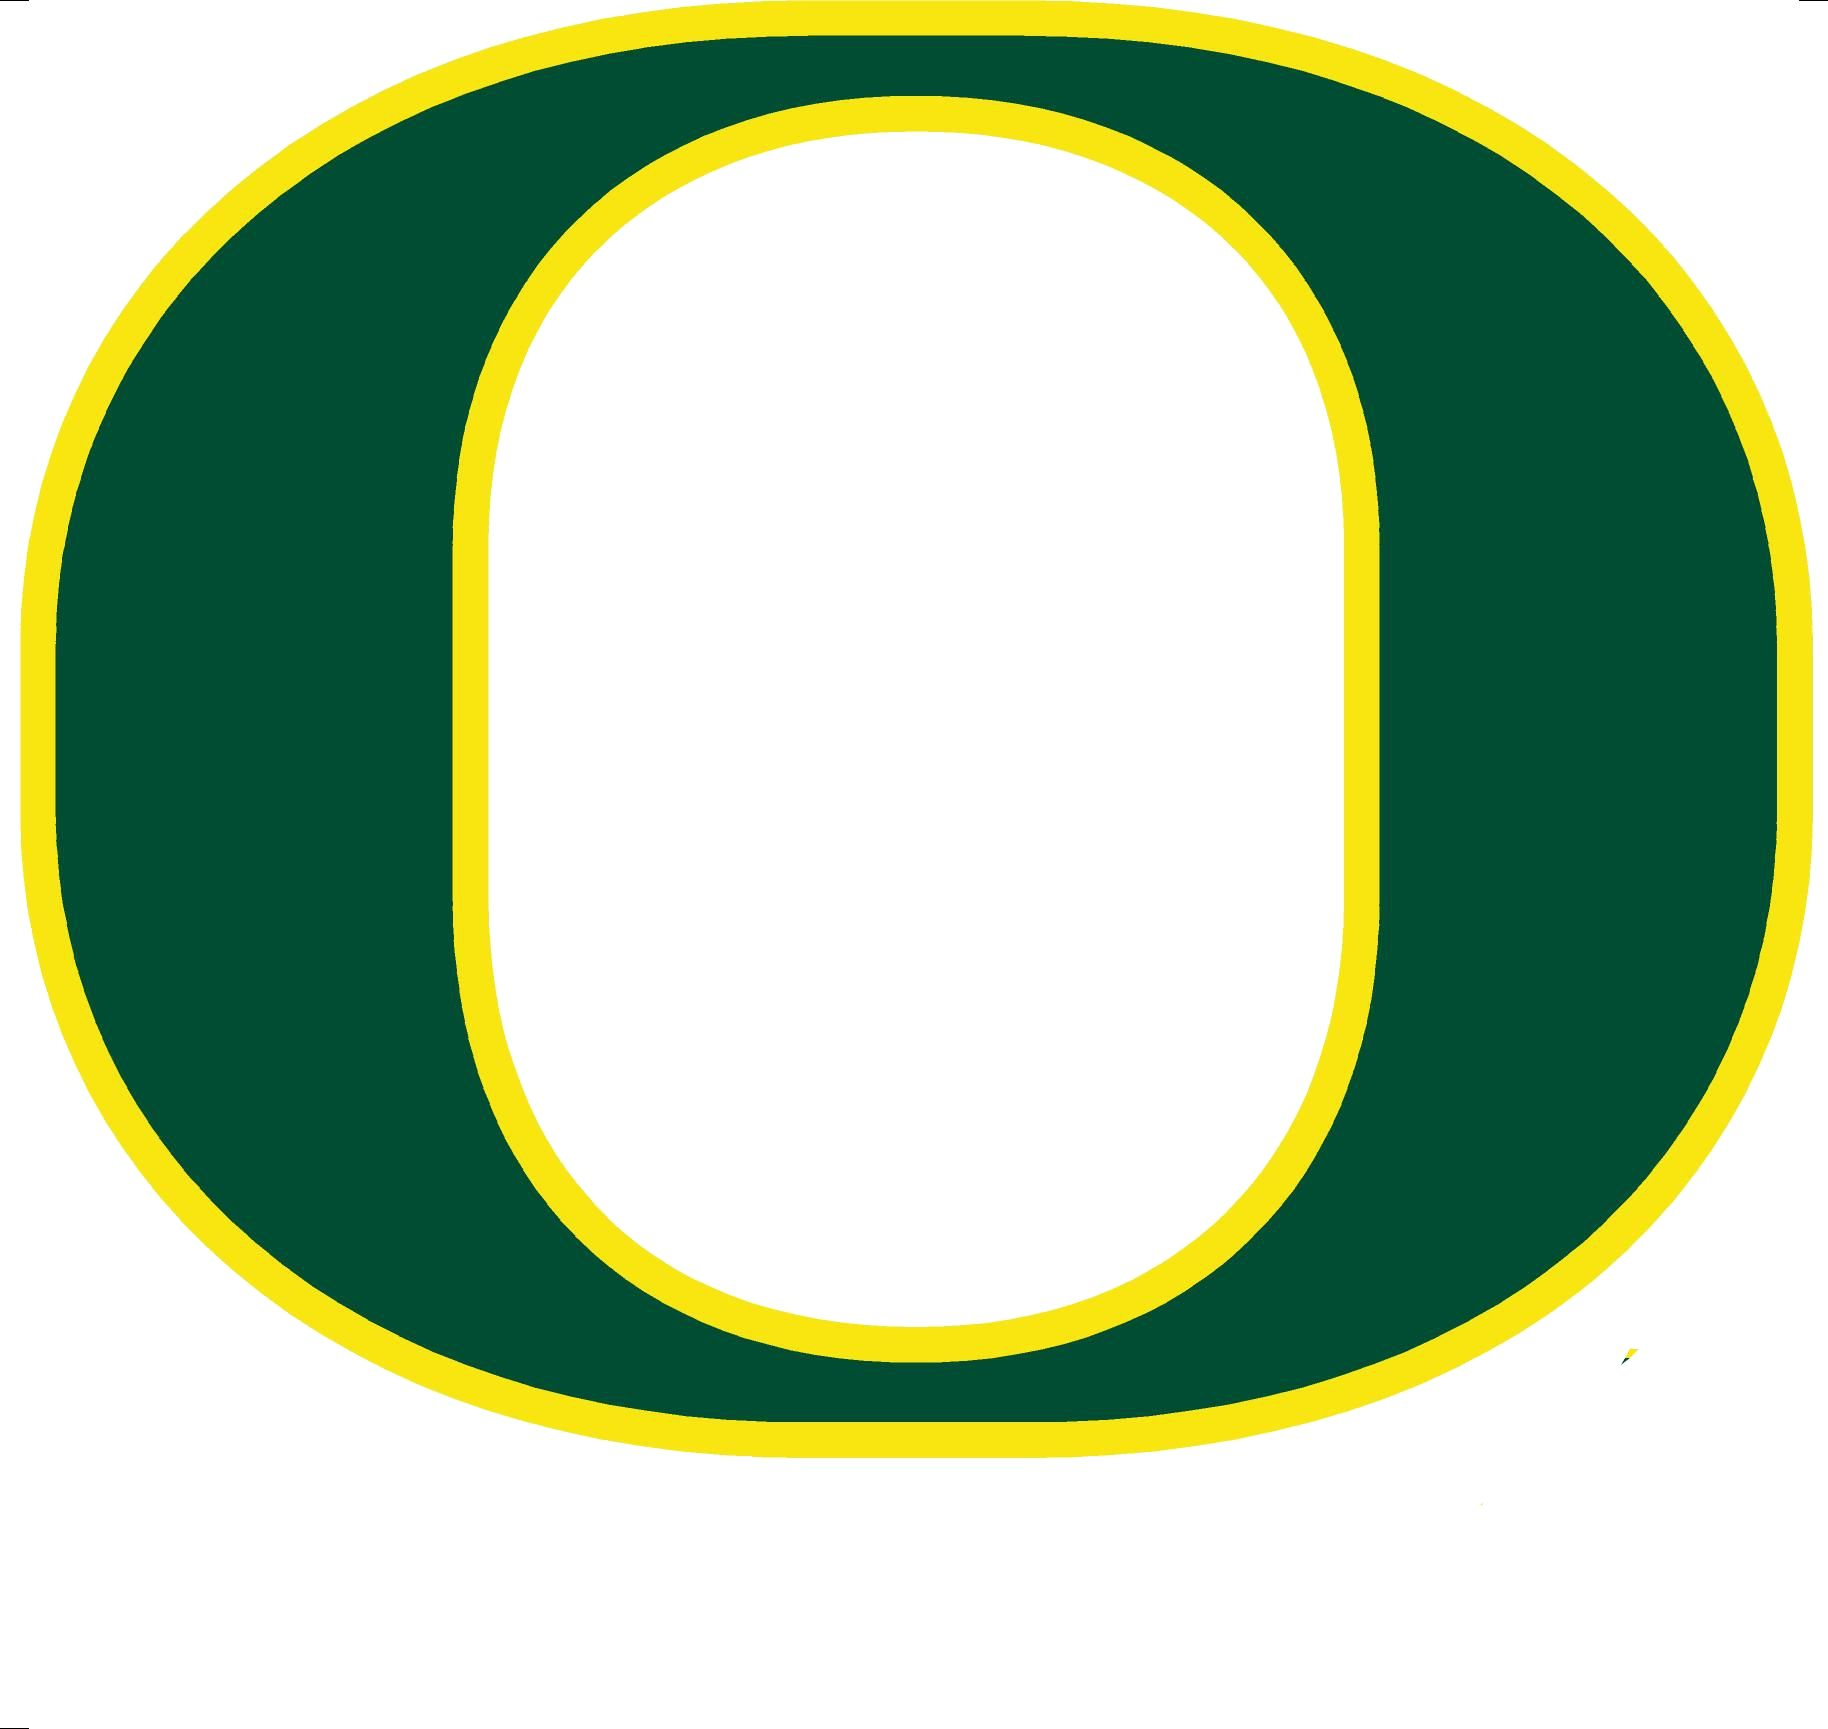 oregon ducks oregon ducks college football and college football logos rh pinterest com oregon ducks logo svg oregon ducks logo clip art